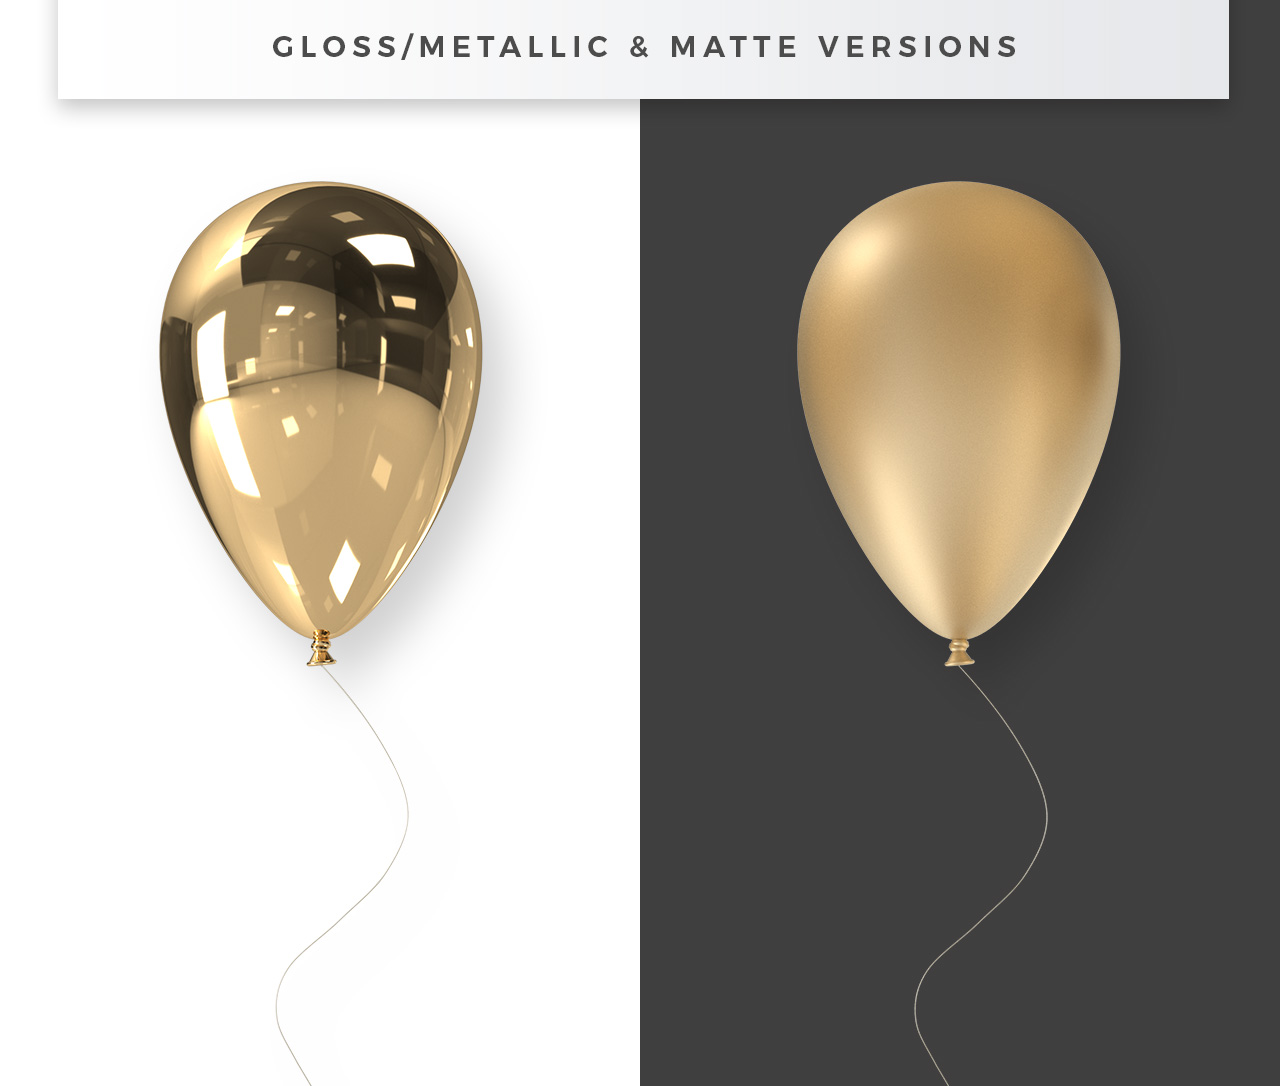 Transparent Balloon PNGs